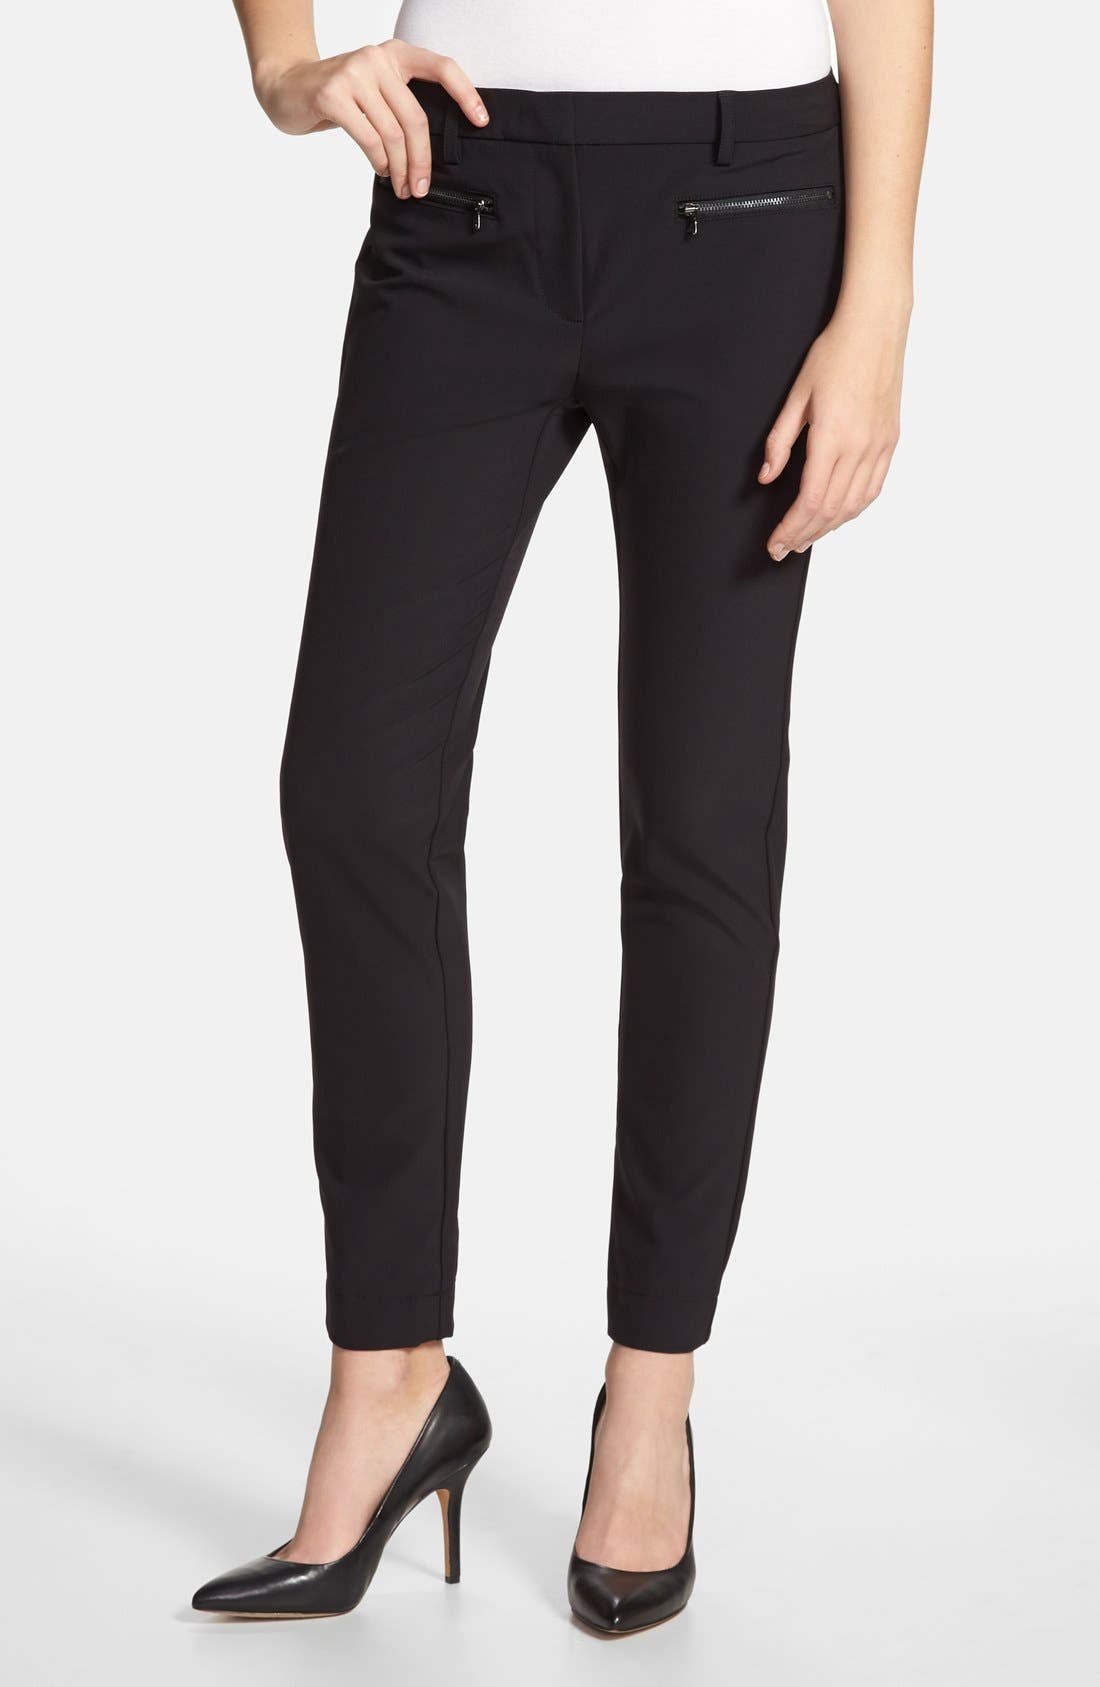 Main Image - Kenneth Cole New York 'Alison' Zip Pocket Pants (Regular & Petite)